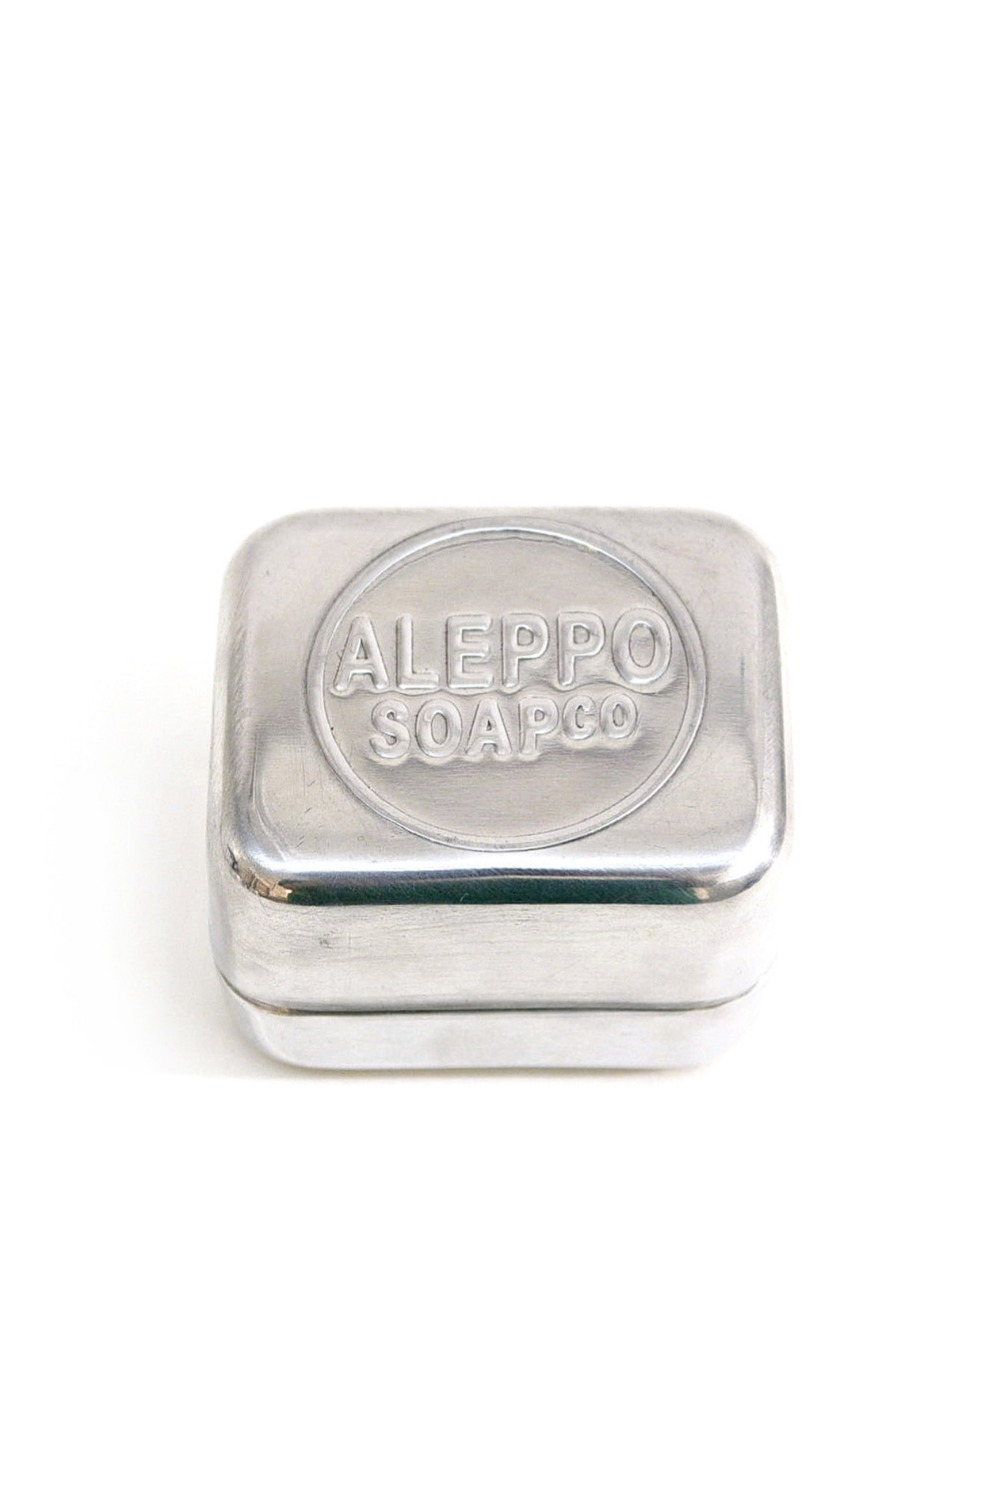 Aleppo Soap co Soap Box